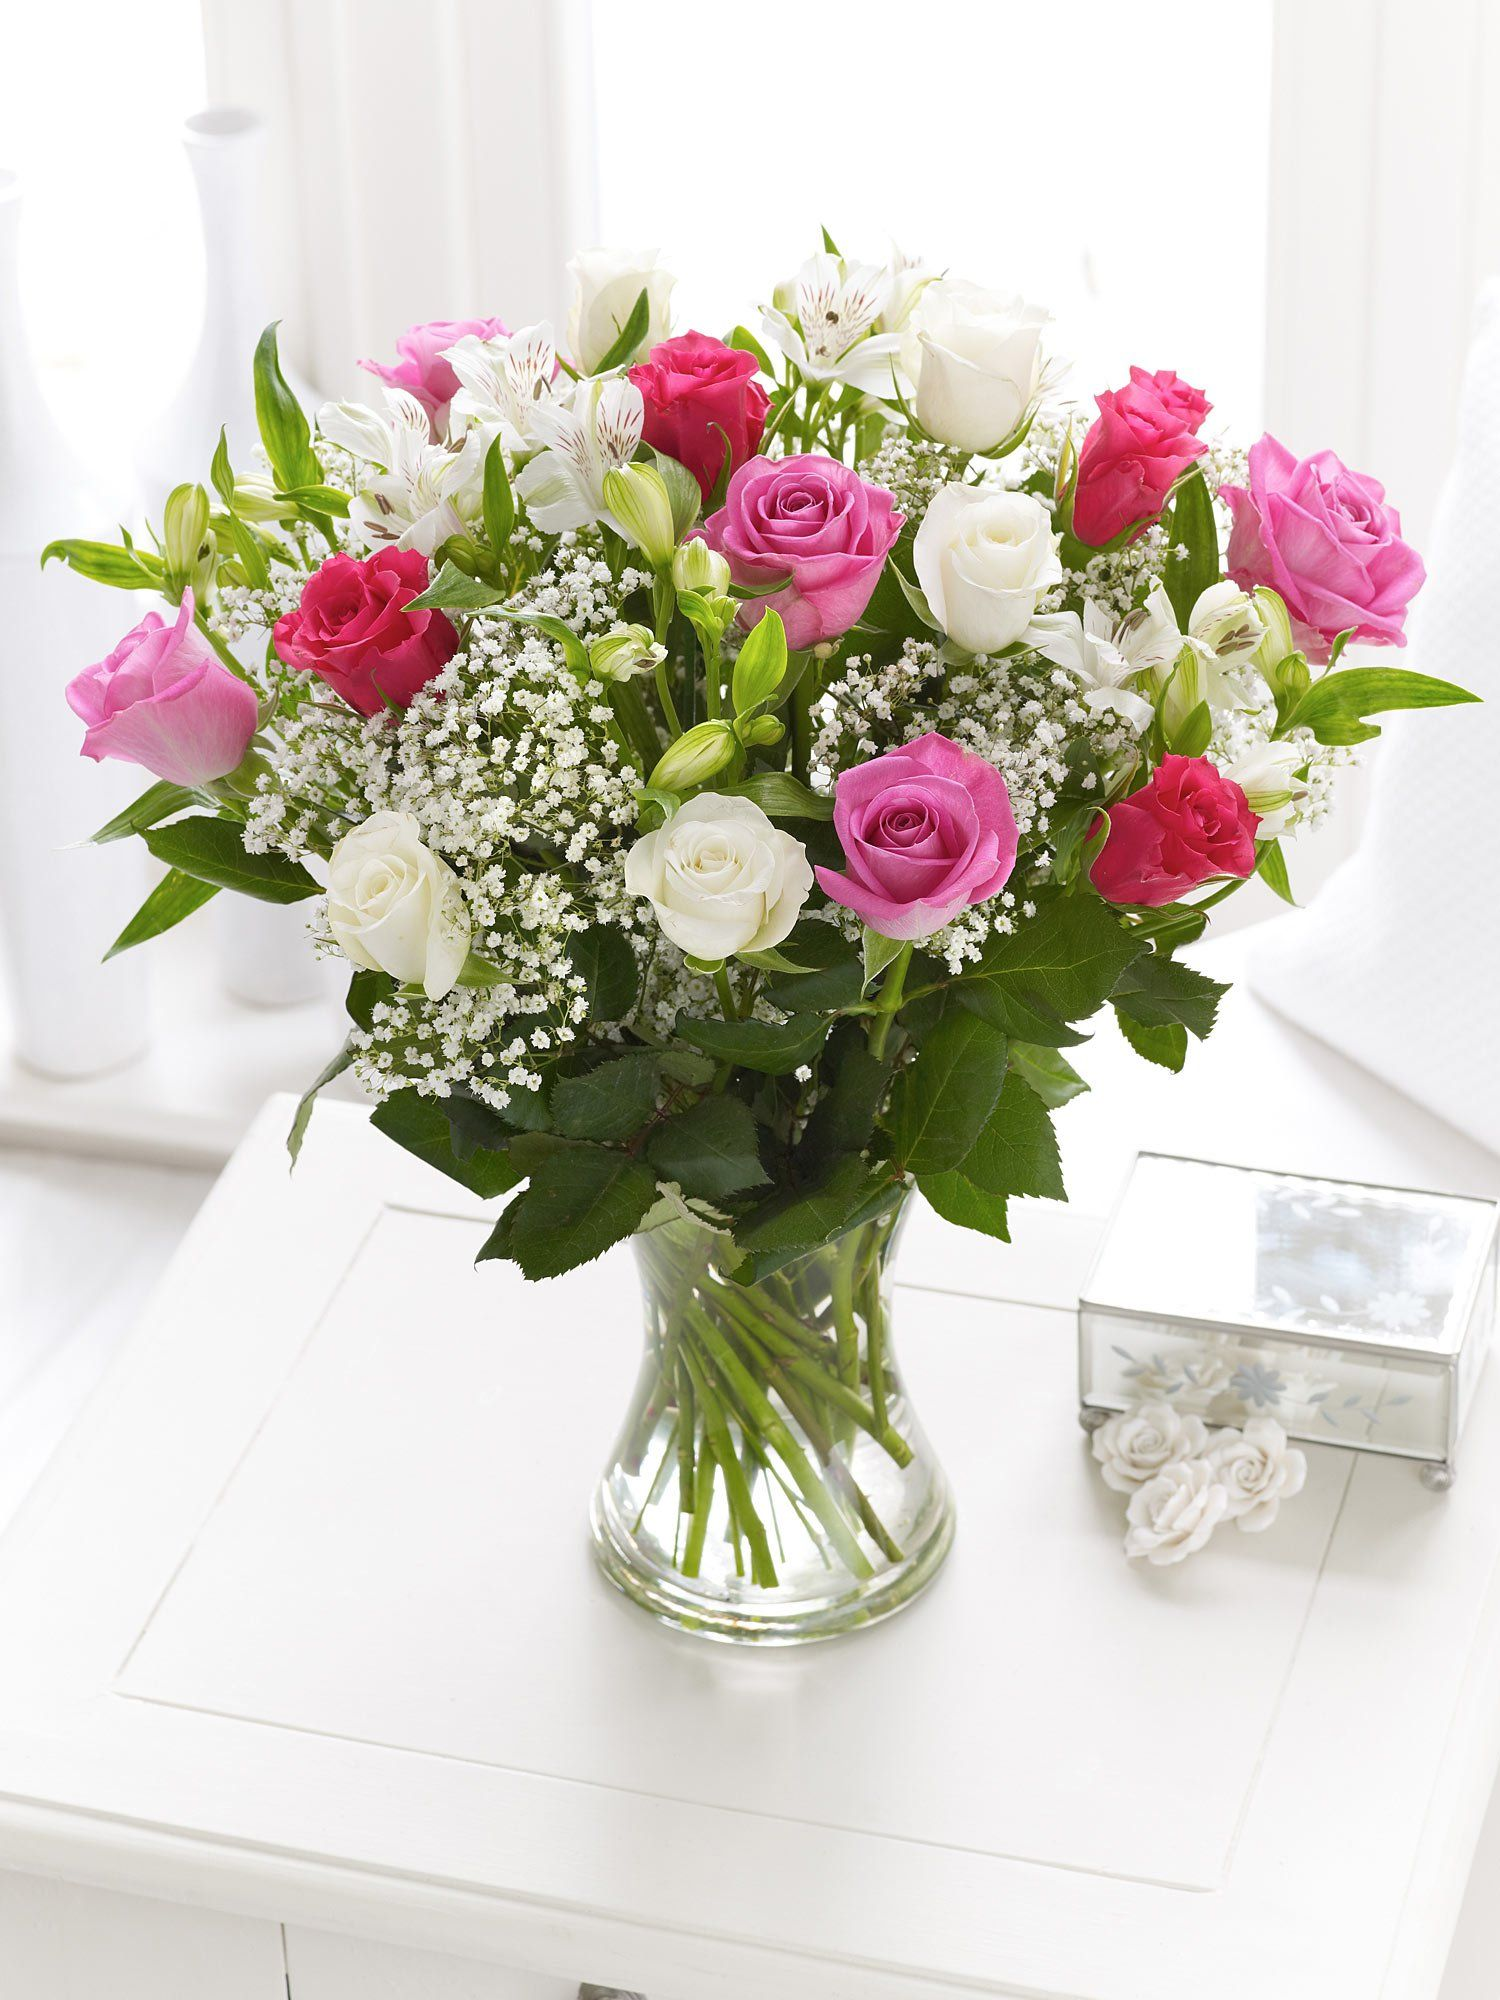 Fairtrade Rose and Alstromeria (Interflora) Flowers